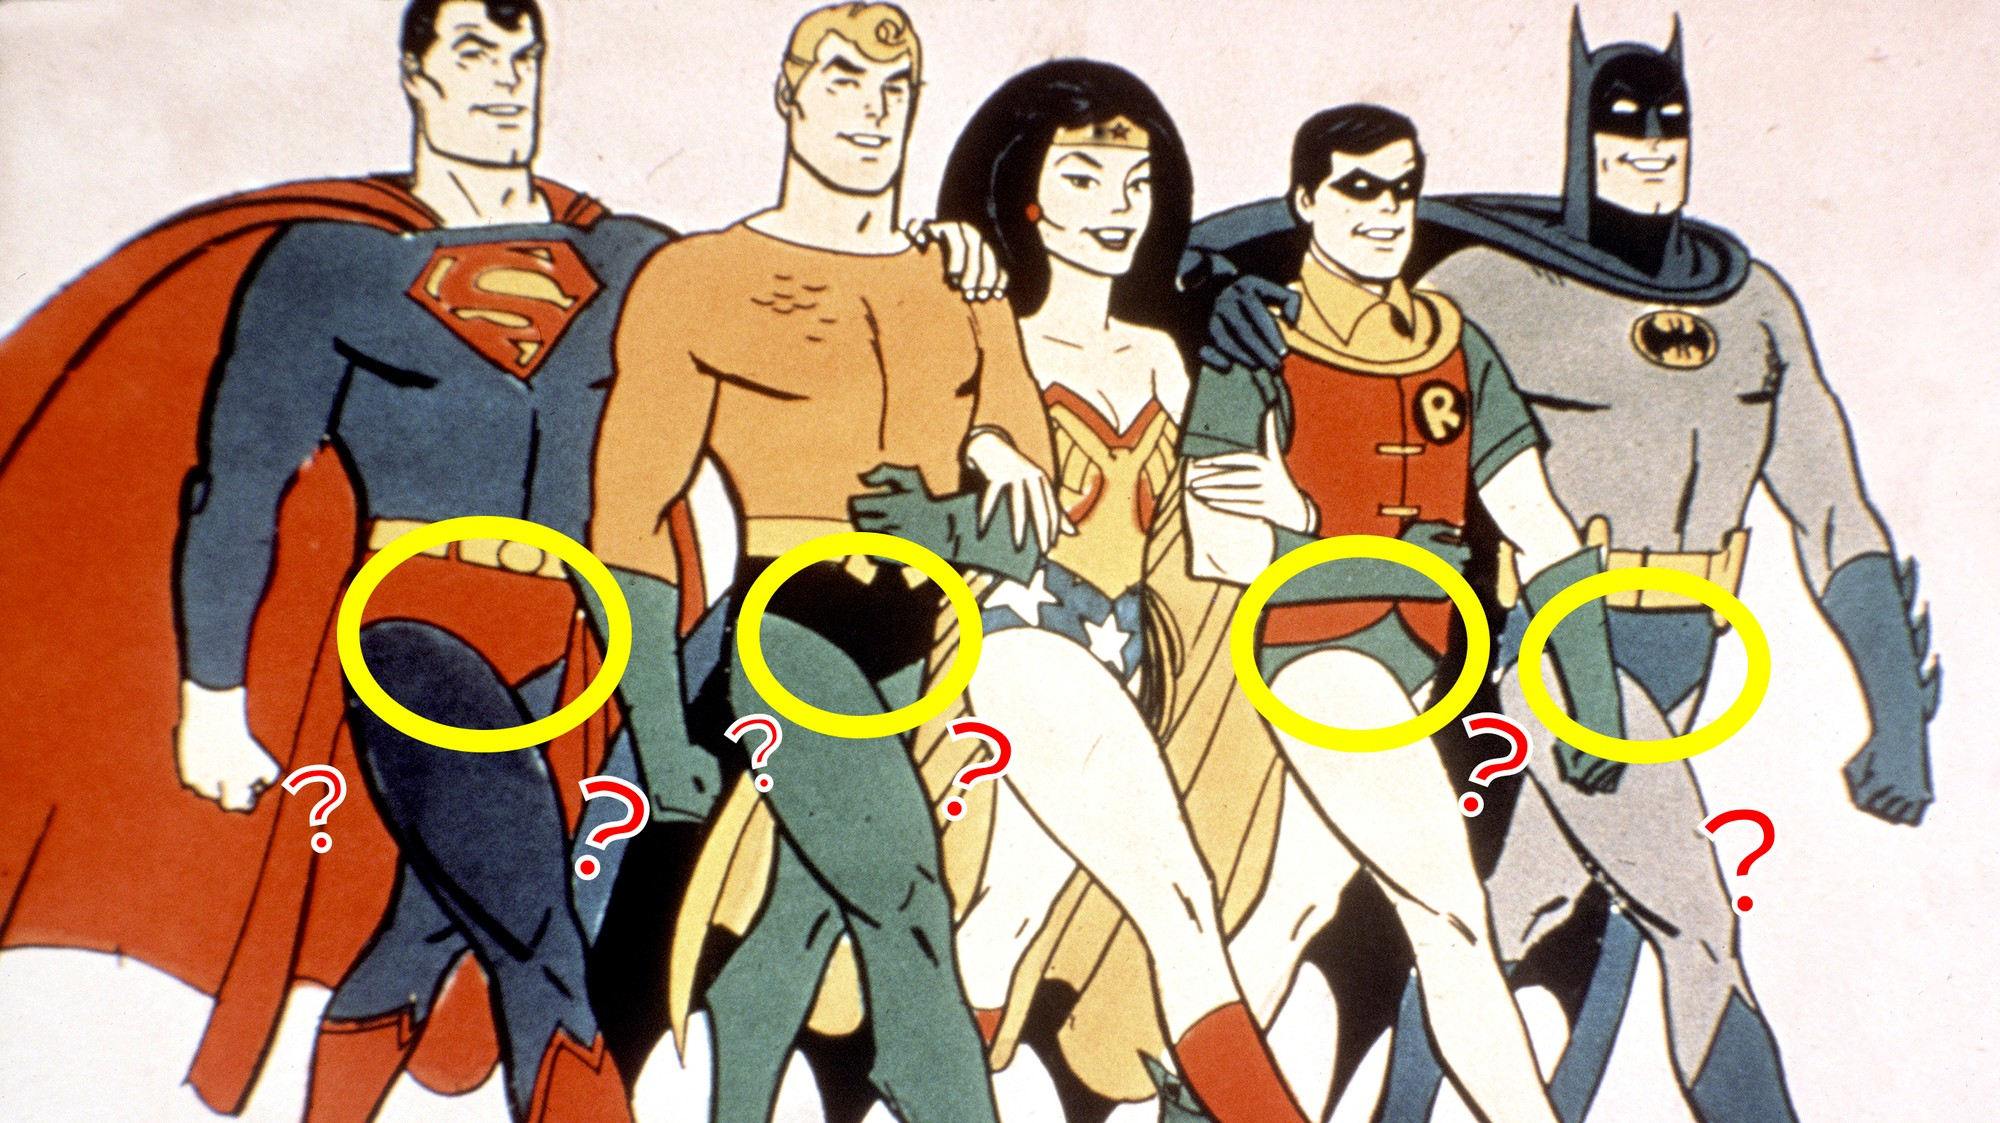 online store 3c81c 7c62b Is Superman Circumcised? What About Wolverine? - VICE